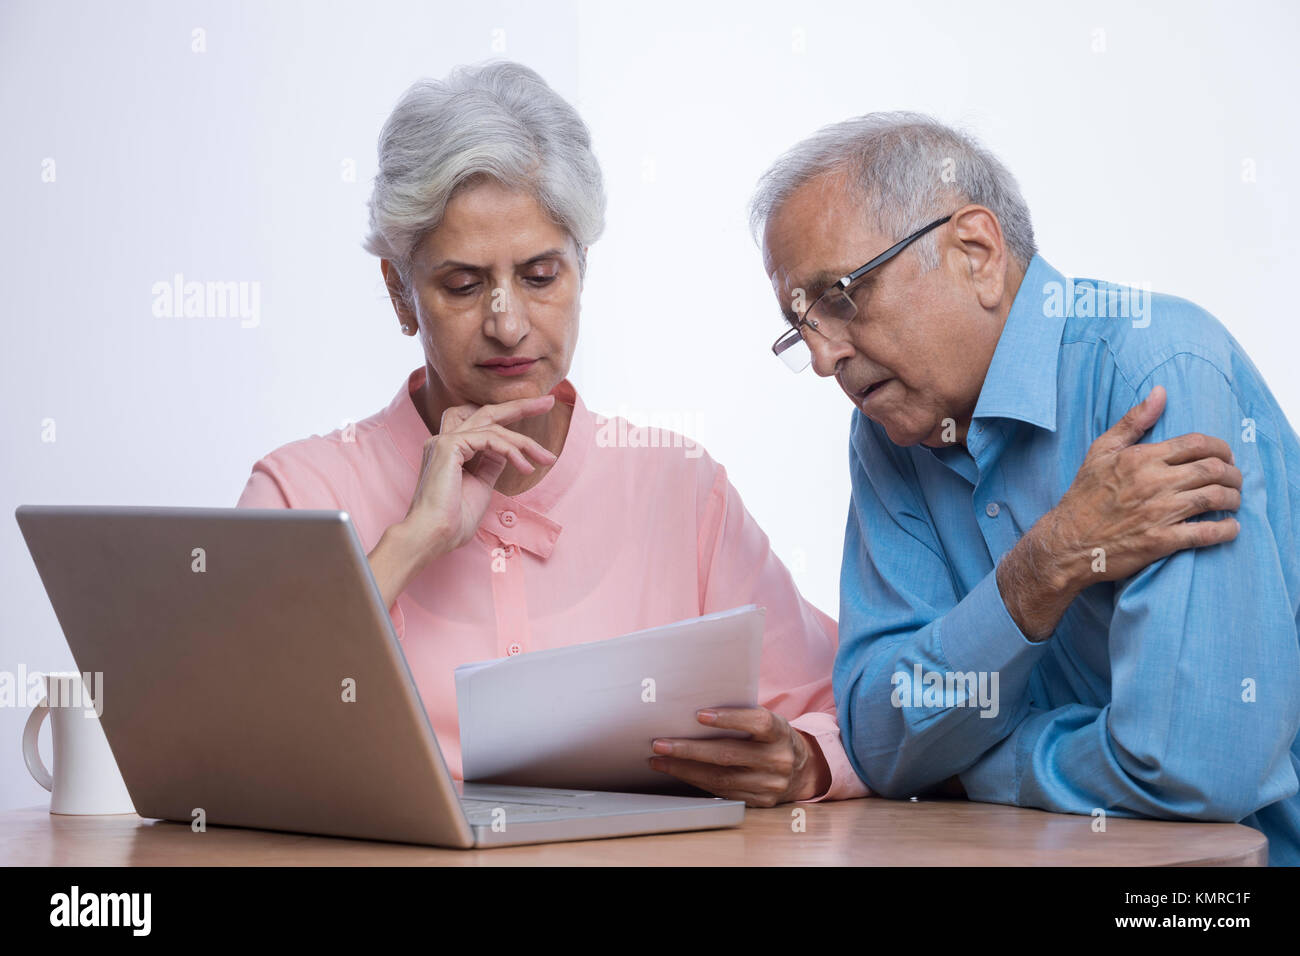 Senior couple looking at documents with laptop sitting on table - Stock Image